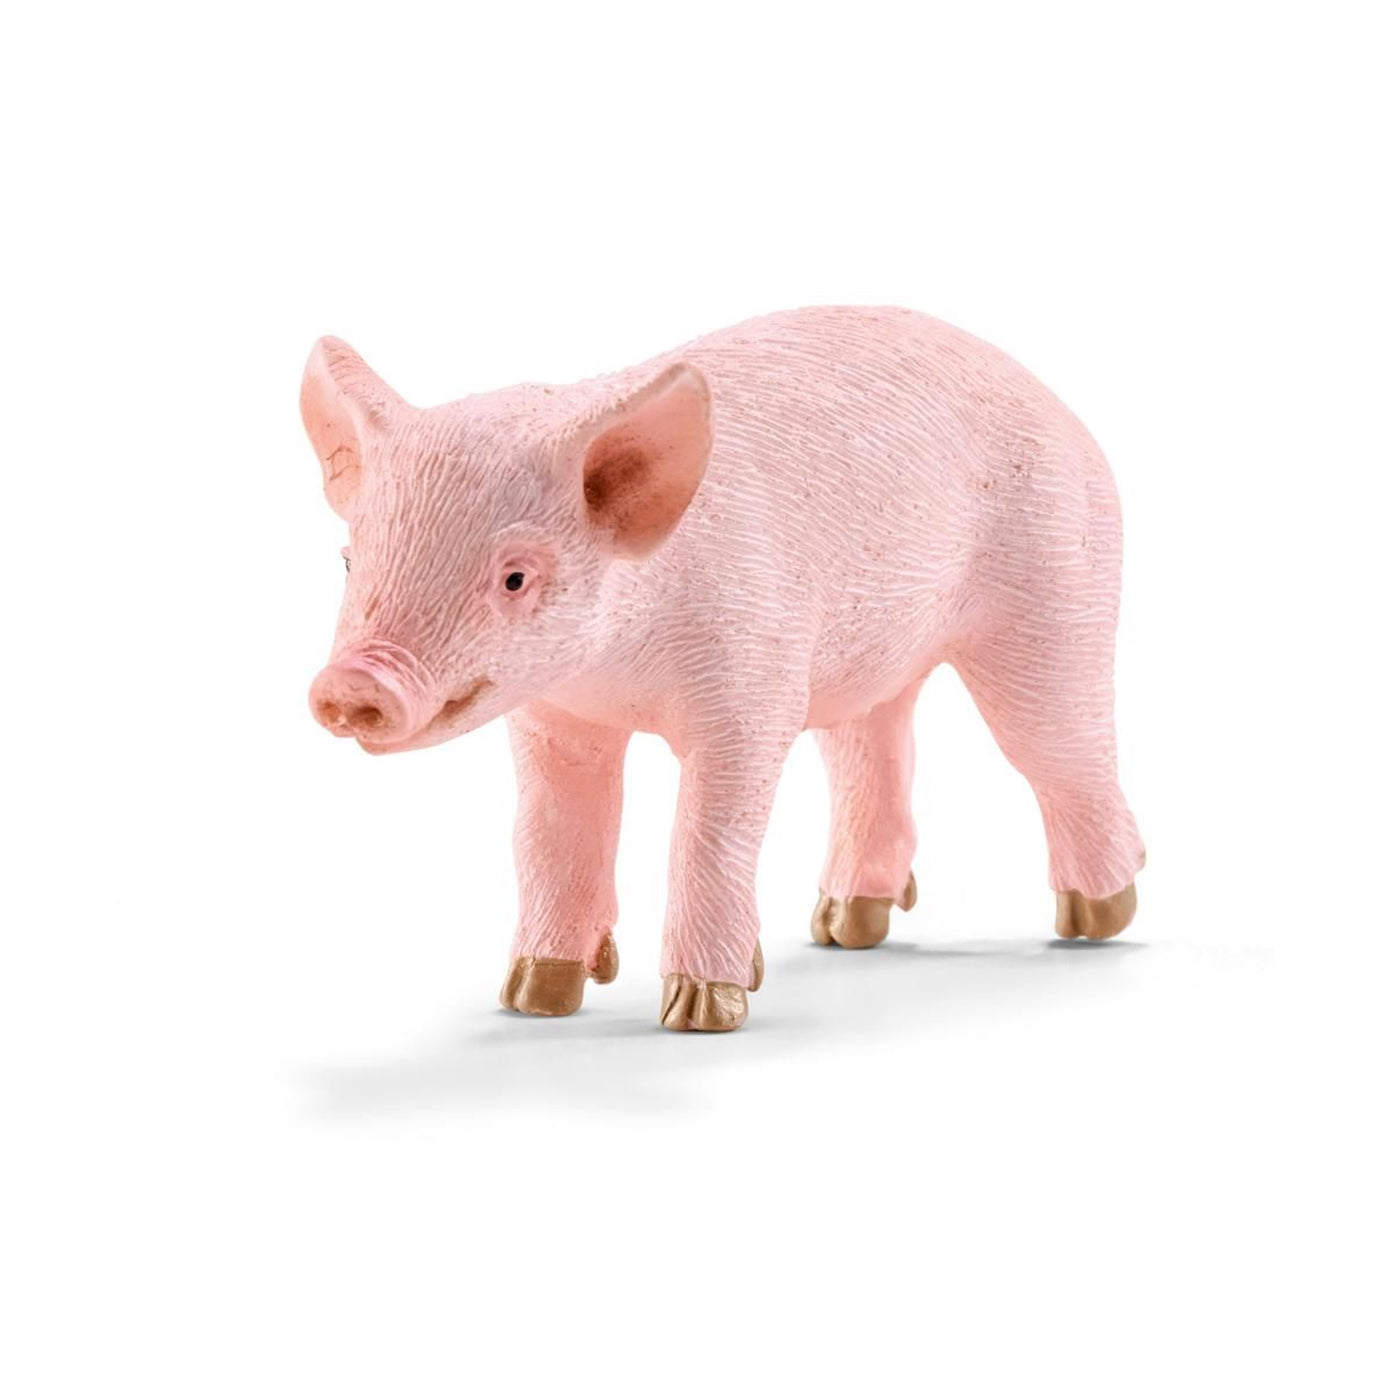 Schleich Farm World Piglet Toy Figurine